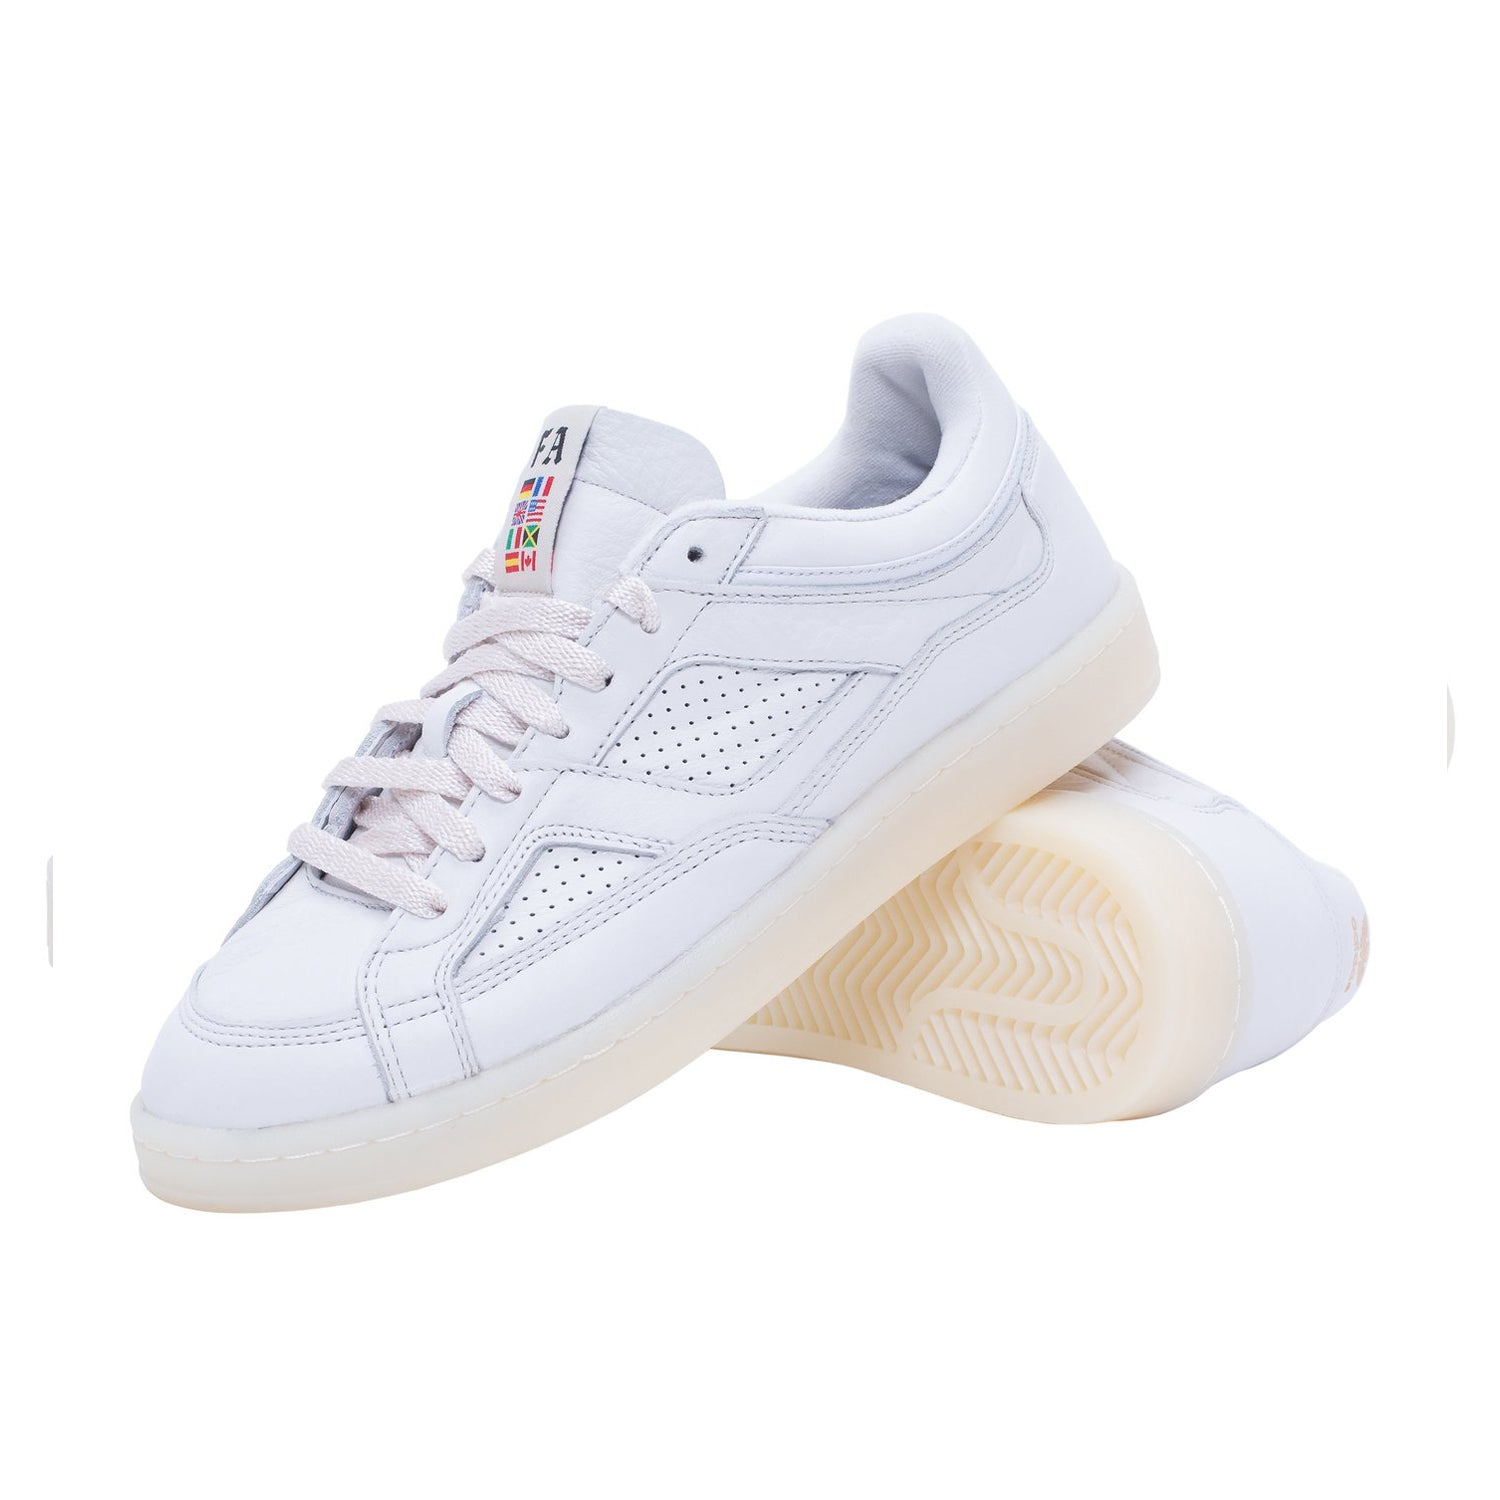 Adidas FA Experiment 2 Shoes Crystal White/Chalk White